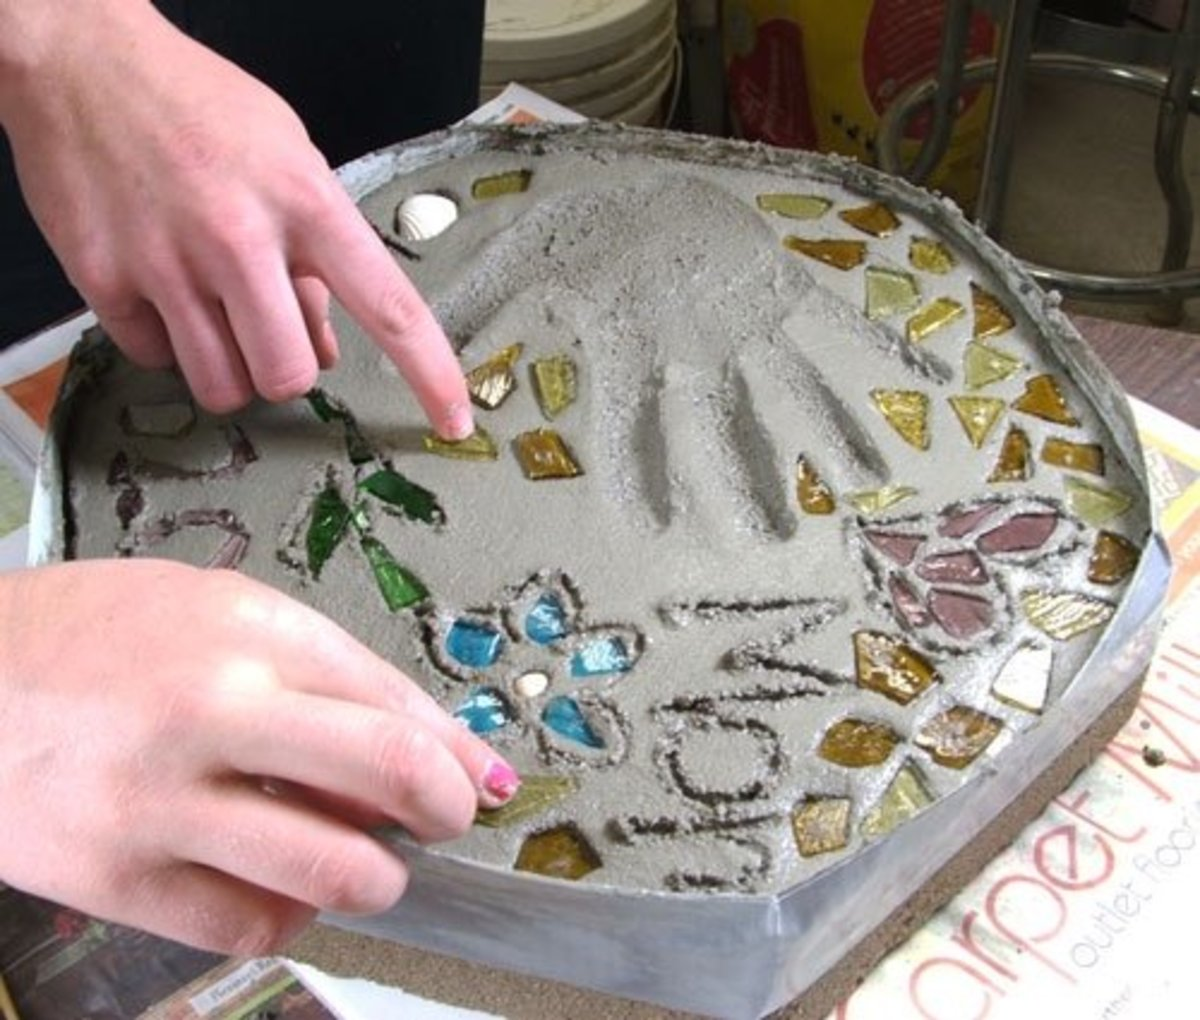 Step 7. Using a pencil or thin stick, carve any letters/numbers into the mortar. Transfer your glass and other decorative items to the wet mortar gently pressing each piece into the wet cement.  Allow the mortar to dry (set-up) for about 15 to 20 min